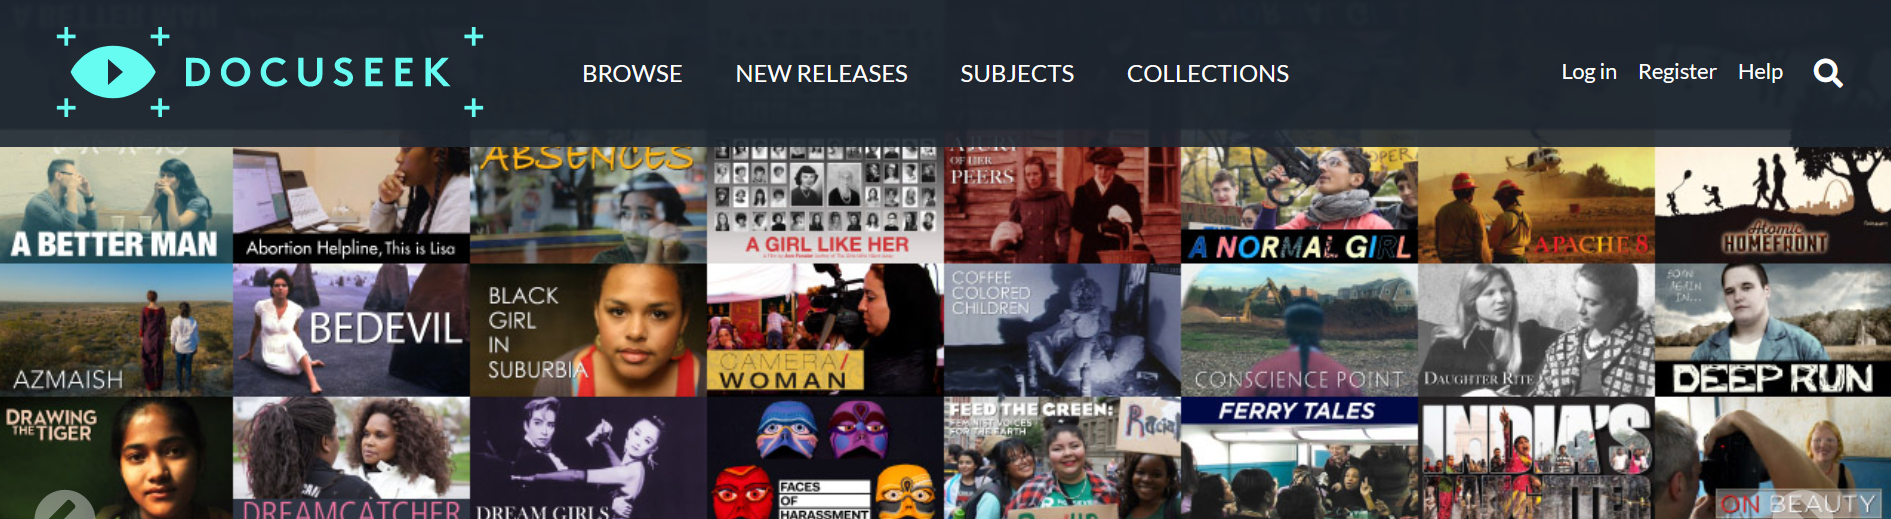 Portion of the Docuseek collection page featuring cover images of selected included films